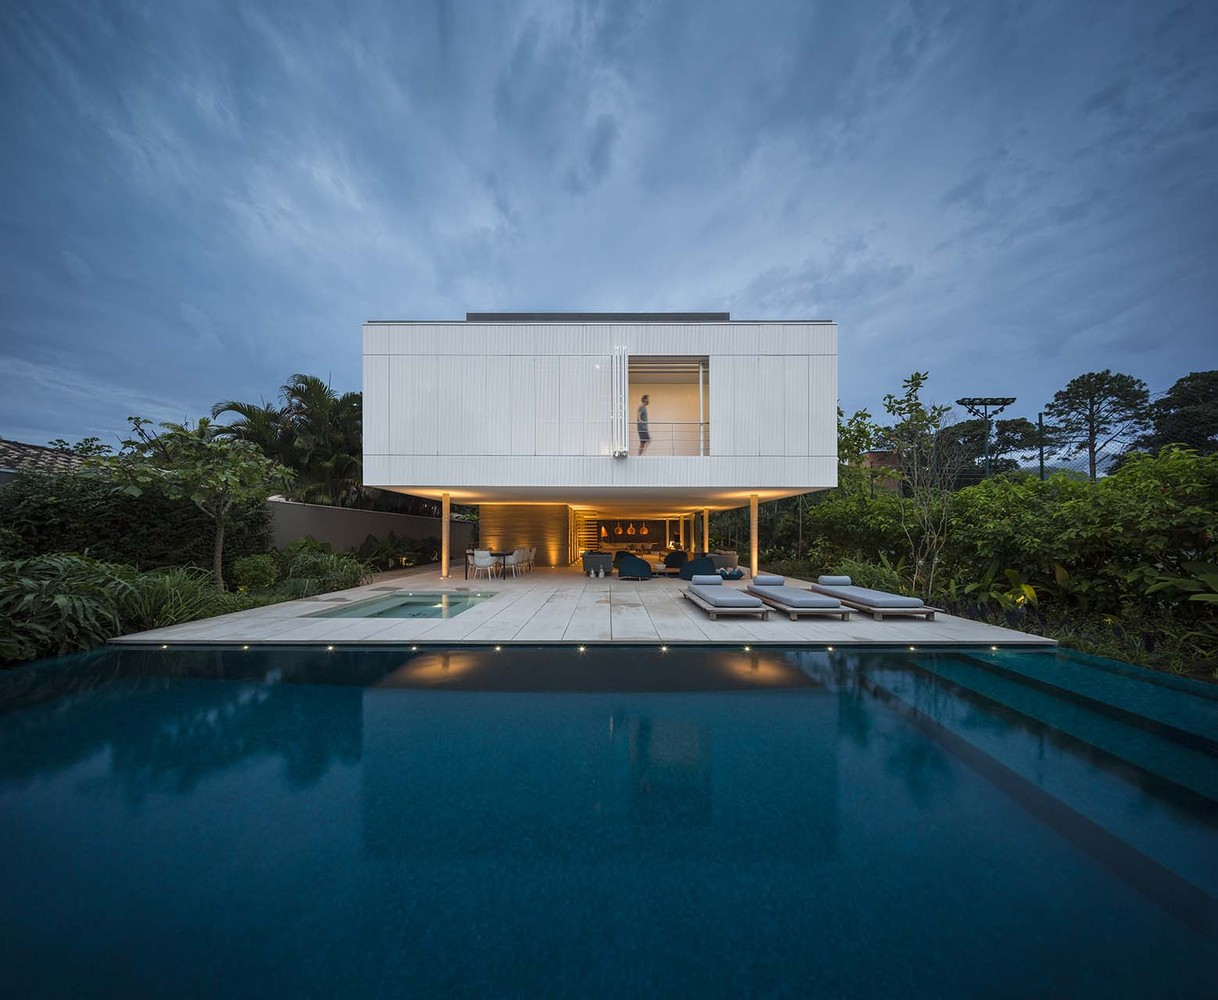 The fabulous white house by studio mk27 in brazil for Architecture design of white house